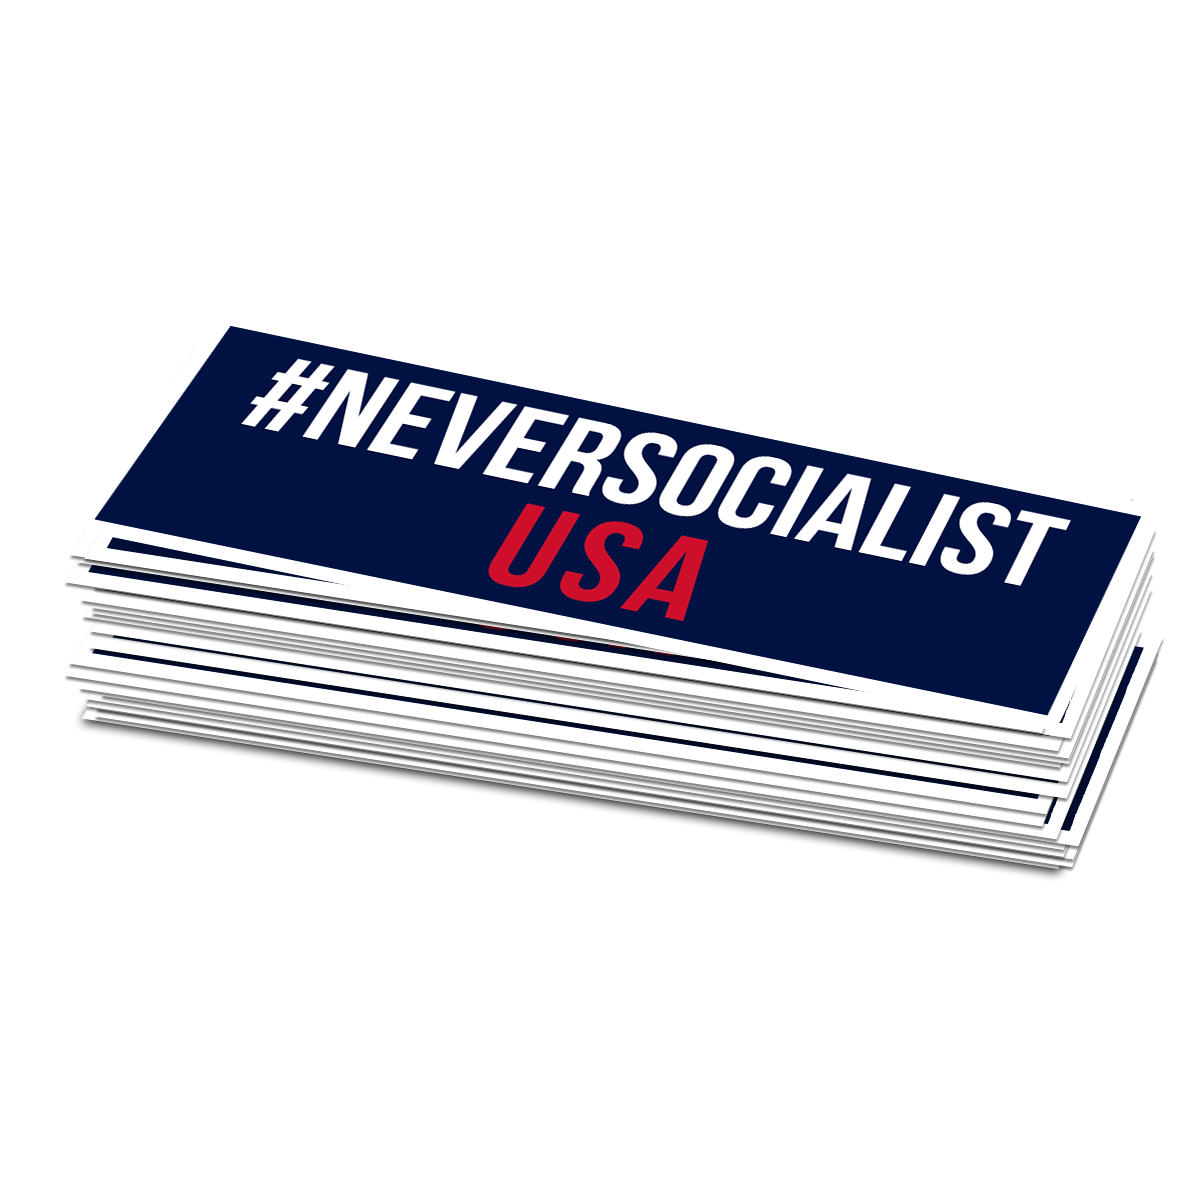 #NeverSocialist USA Bumper Sticker - Set of 2